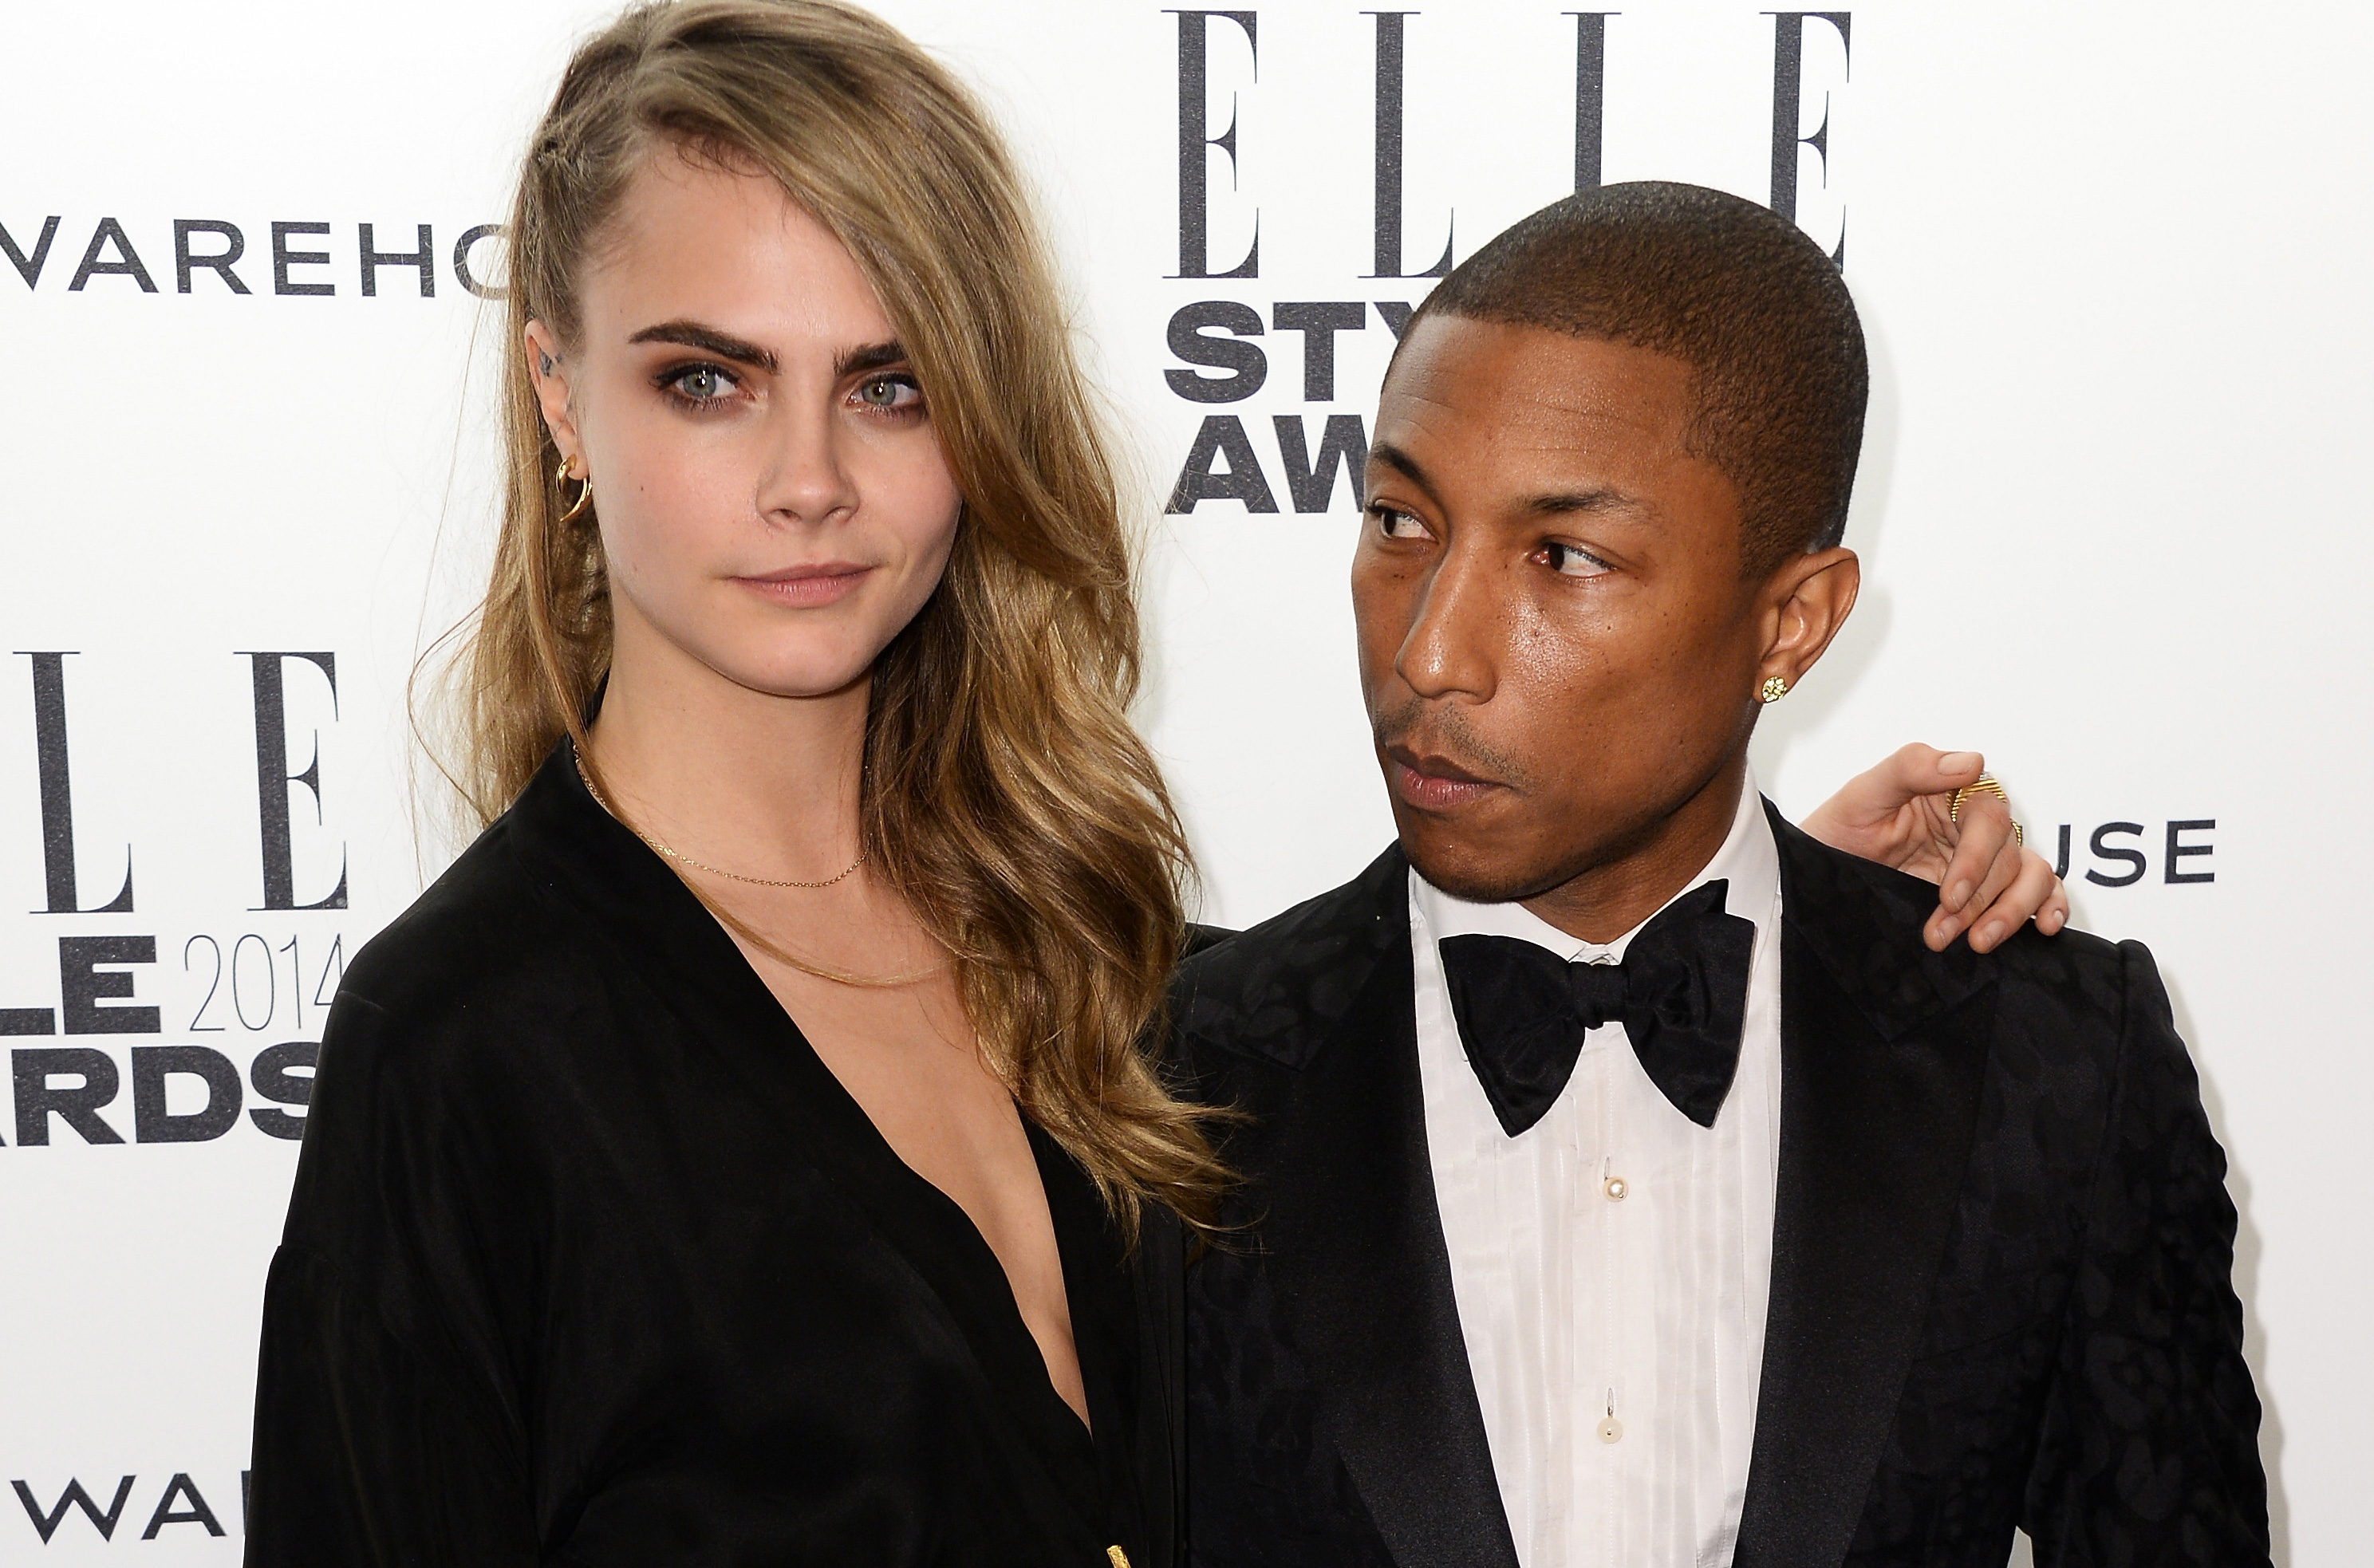 pharrell williams dating cara Pharrell williams (born april 5, 1973), also known simply as pharrell (/frl/), is an american singer-songwriter, rapper, record producer, musician, and fashion designer.